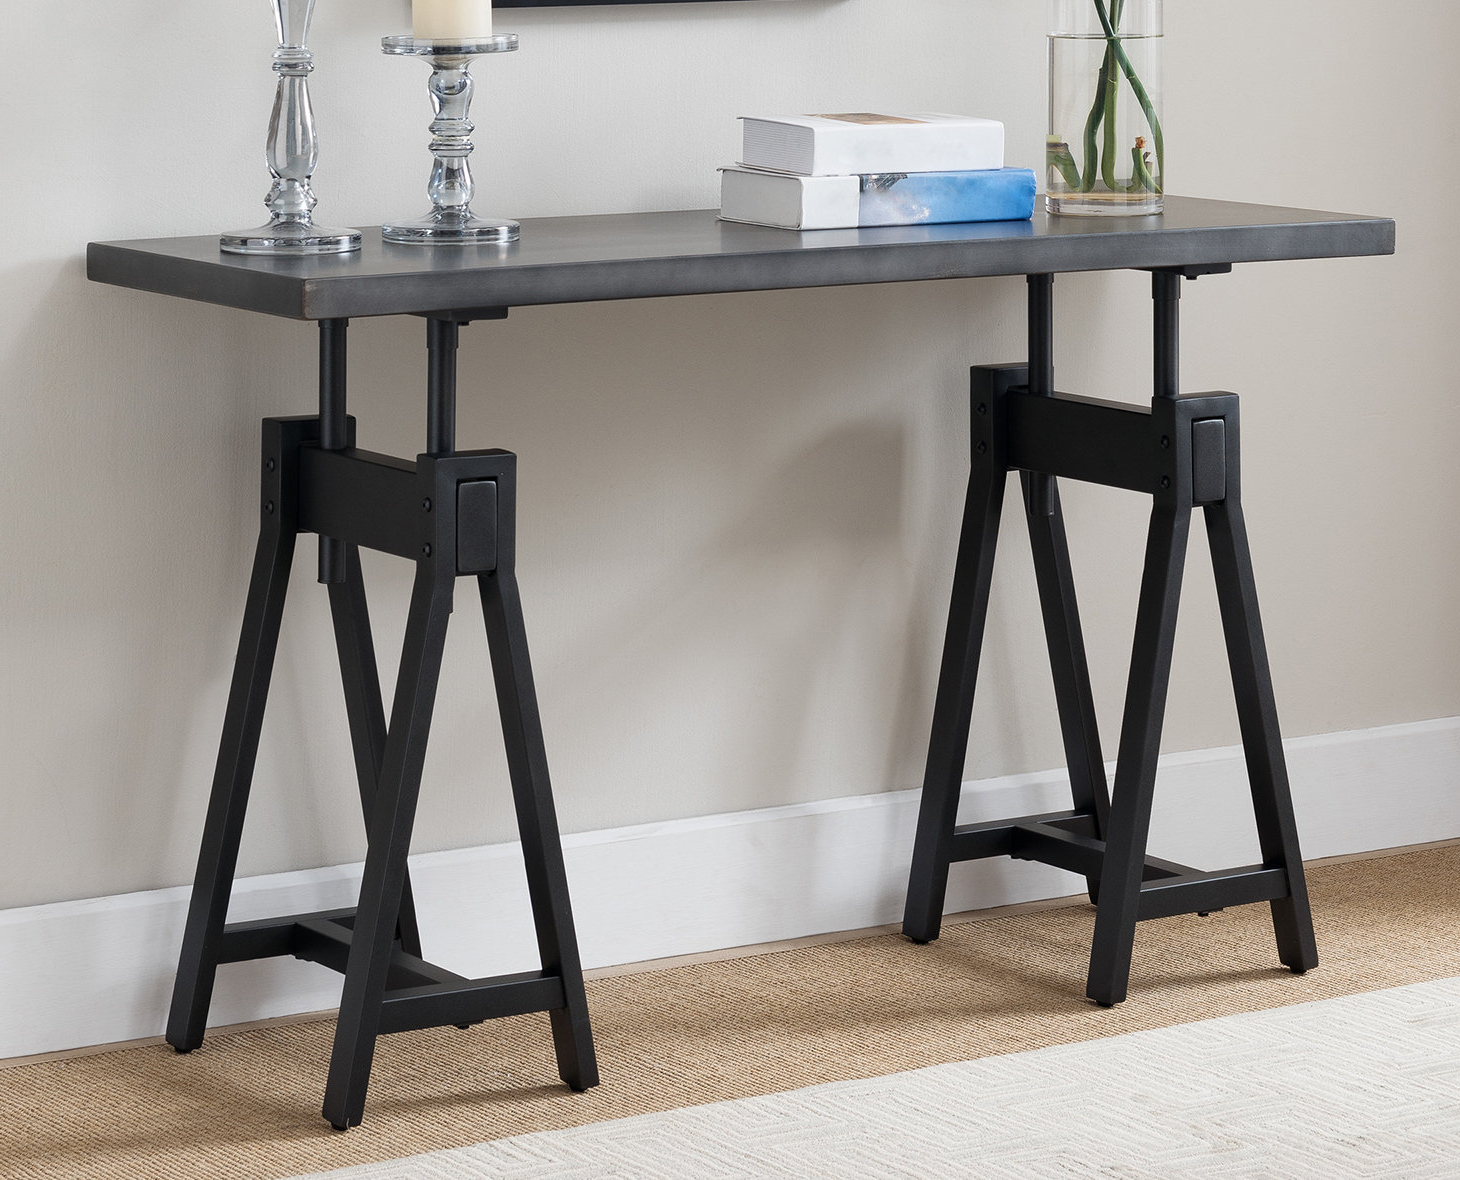 Wayfair Pertaining To Most Current Tobias Media Console Tables (View 2 of 20)